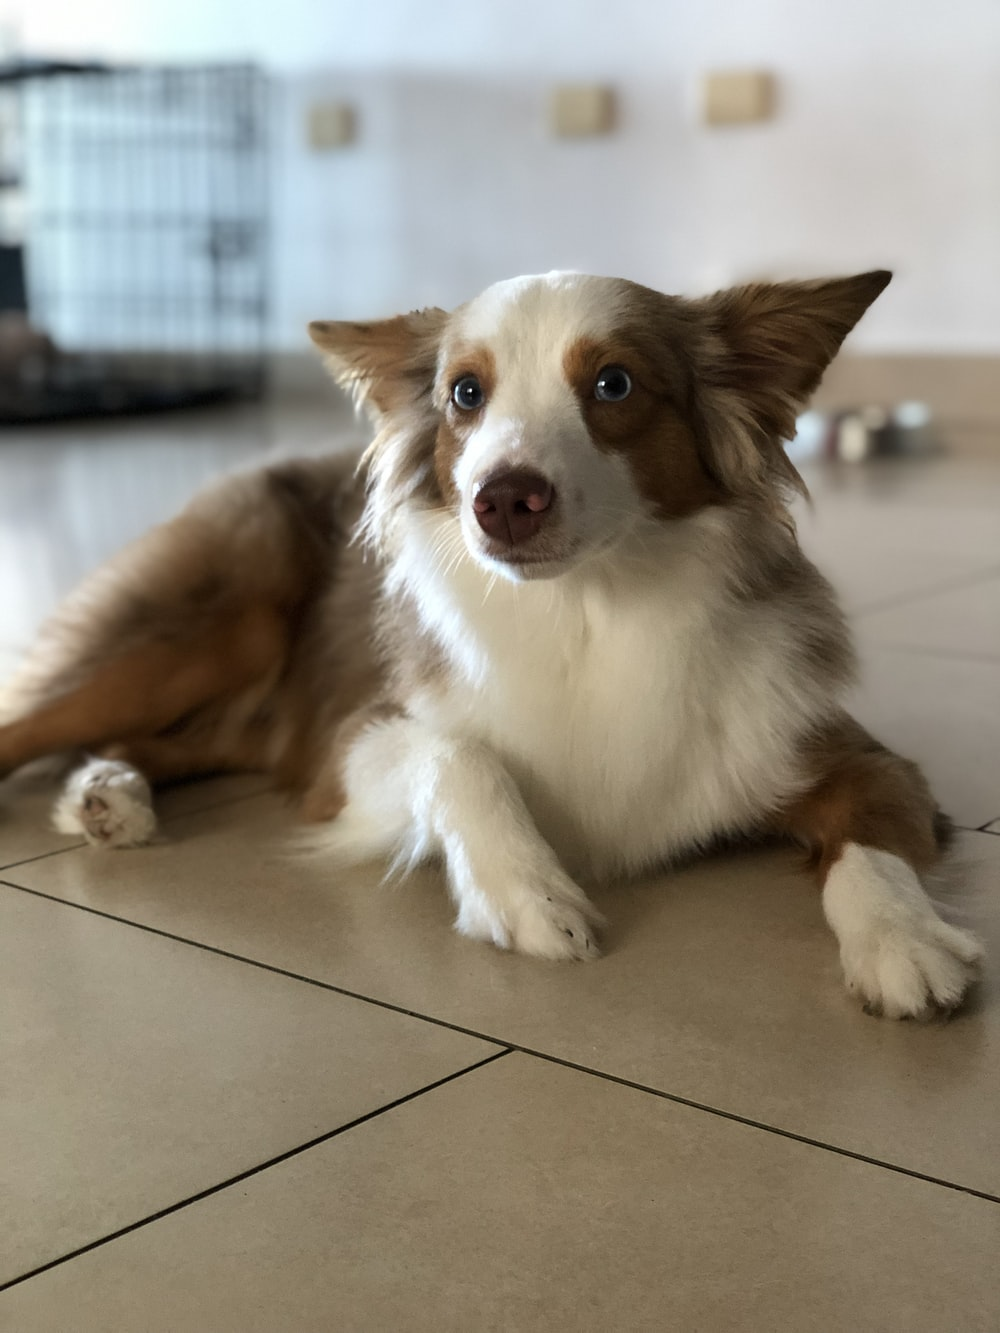 pet dog laying down on floor